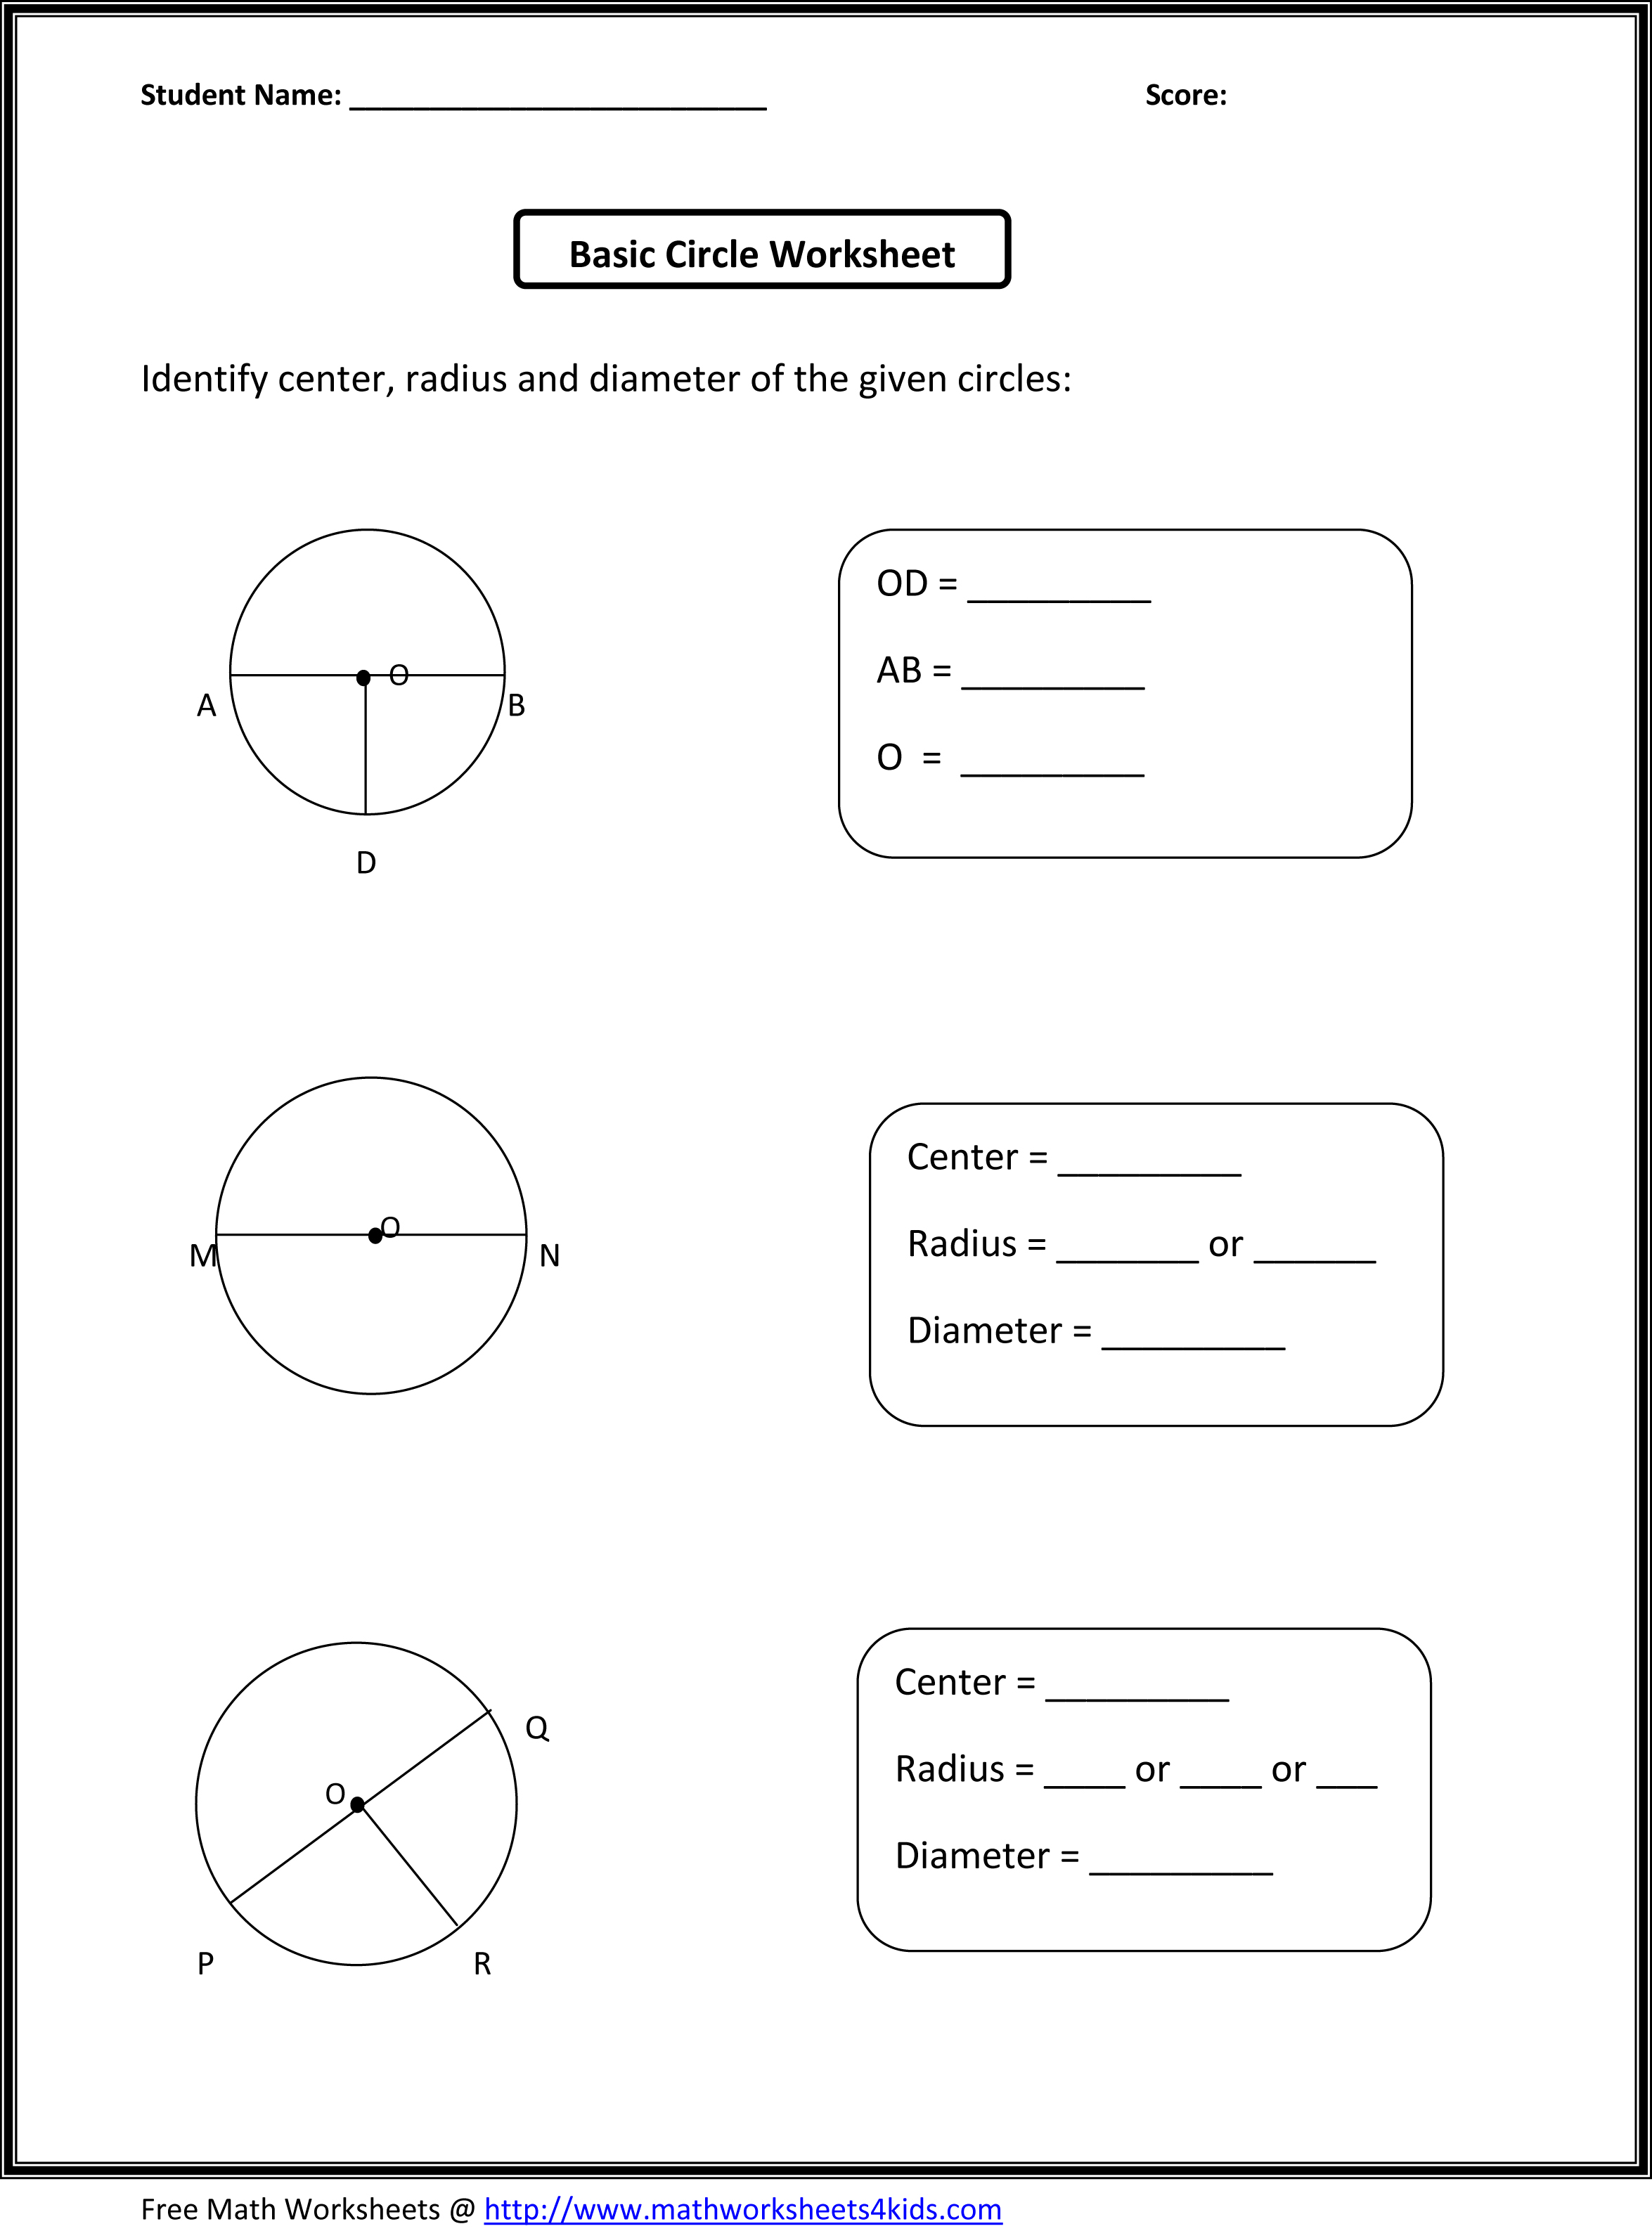 Quadrilateral Worksheets 3Rd Grade – Math Worksheets 3rd Grade Printable